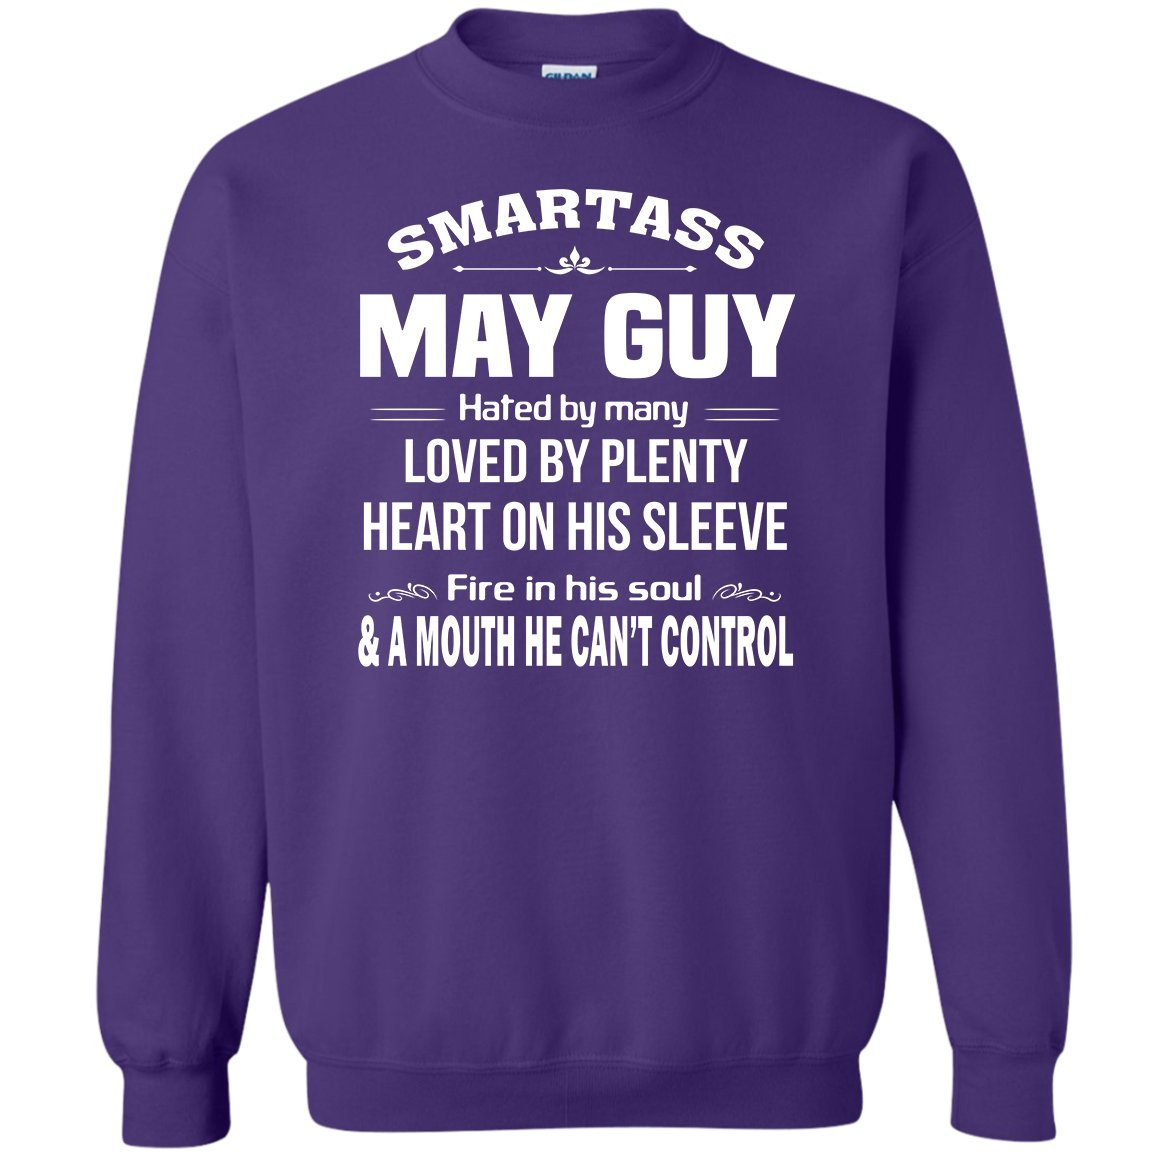 Smartass May Guy Hate by Many Awesome Birthday Born In May Sweatshirt